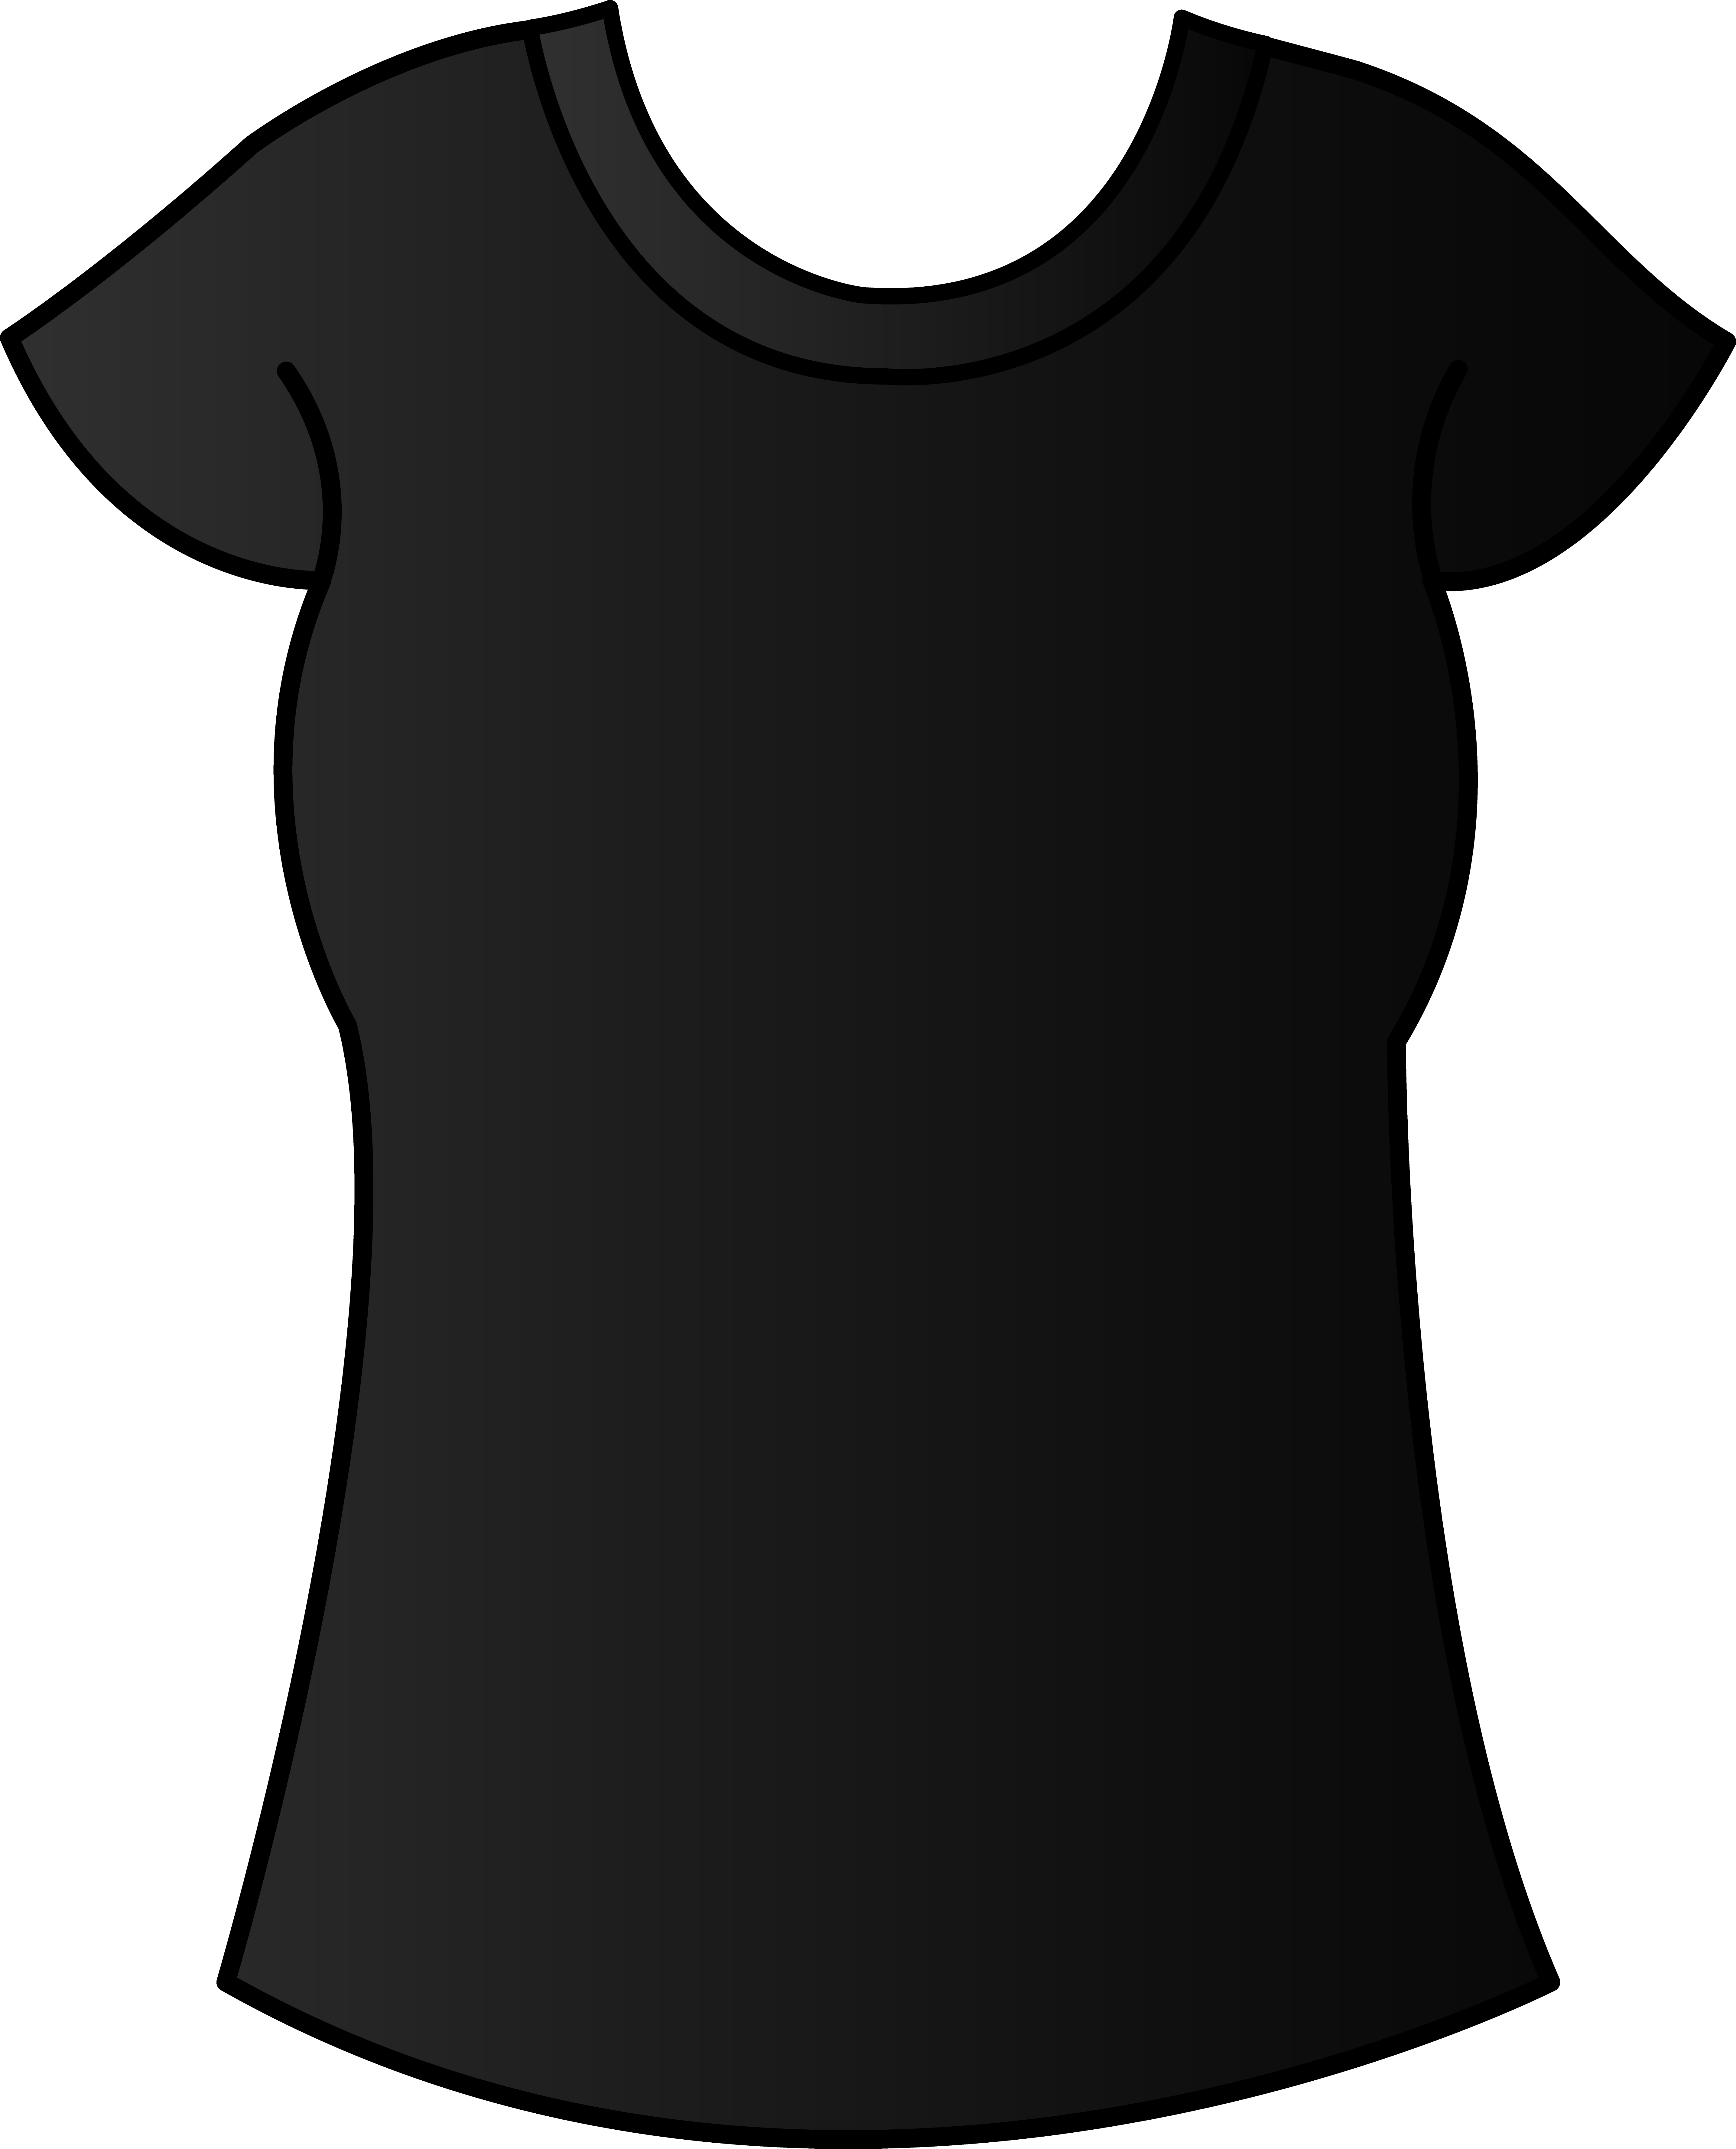 Shirt Clipart | Free download on ClipArtMag